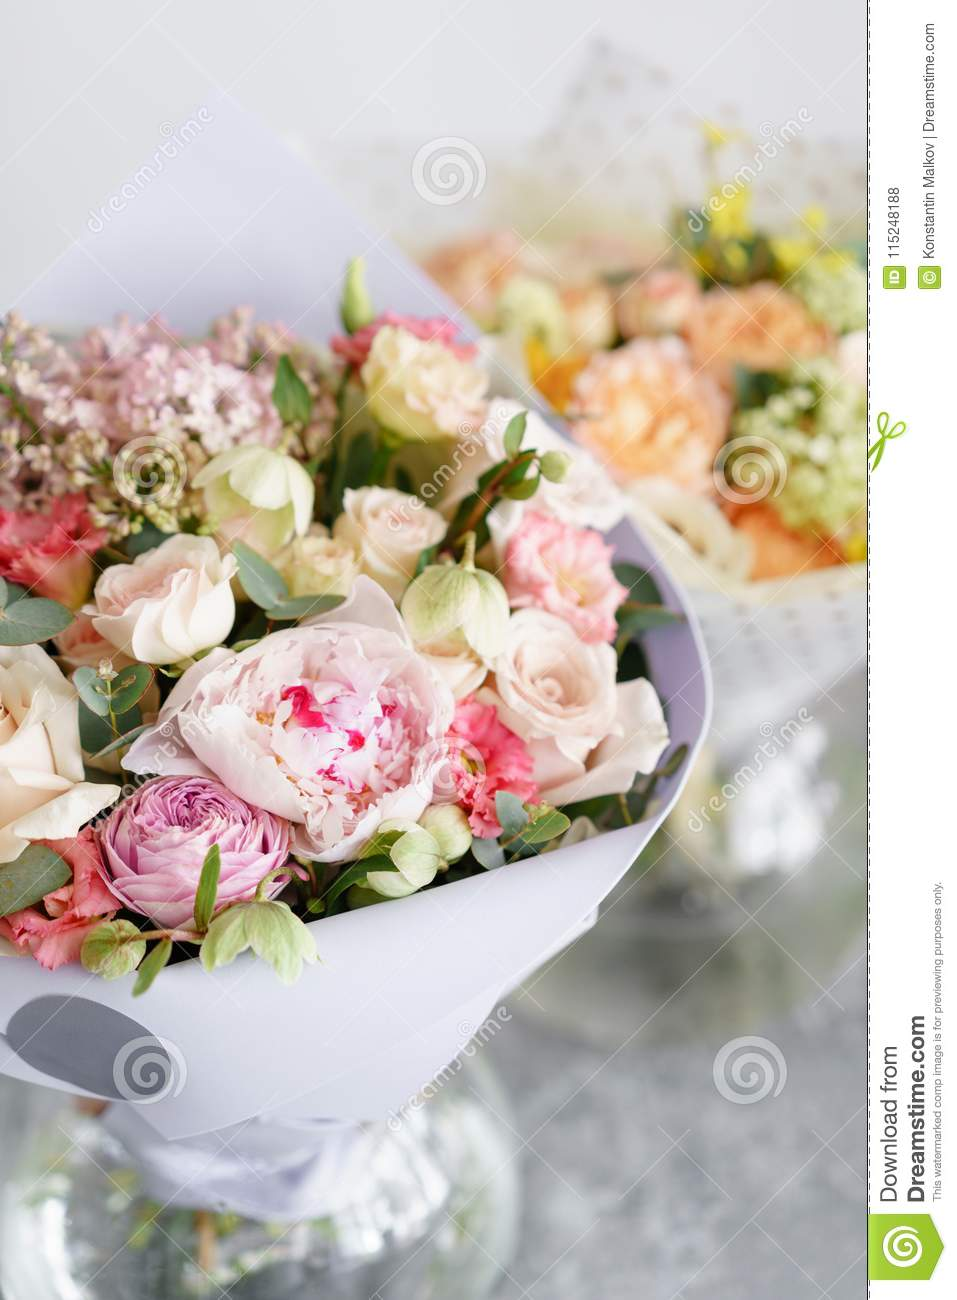 Two bouquet of beautiful flowers on gray table floristry concept download two bouquet of beautiful flowers on gray table floristry concept spring colors mightylinksfo